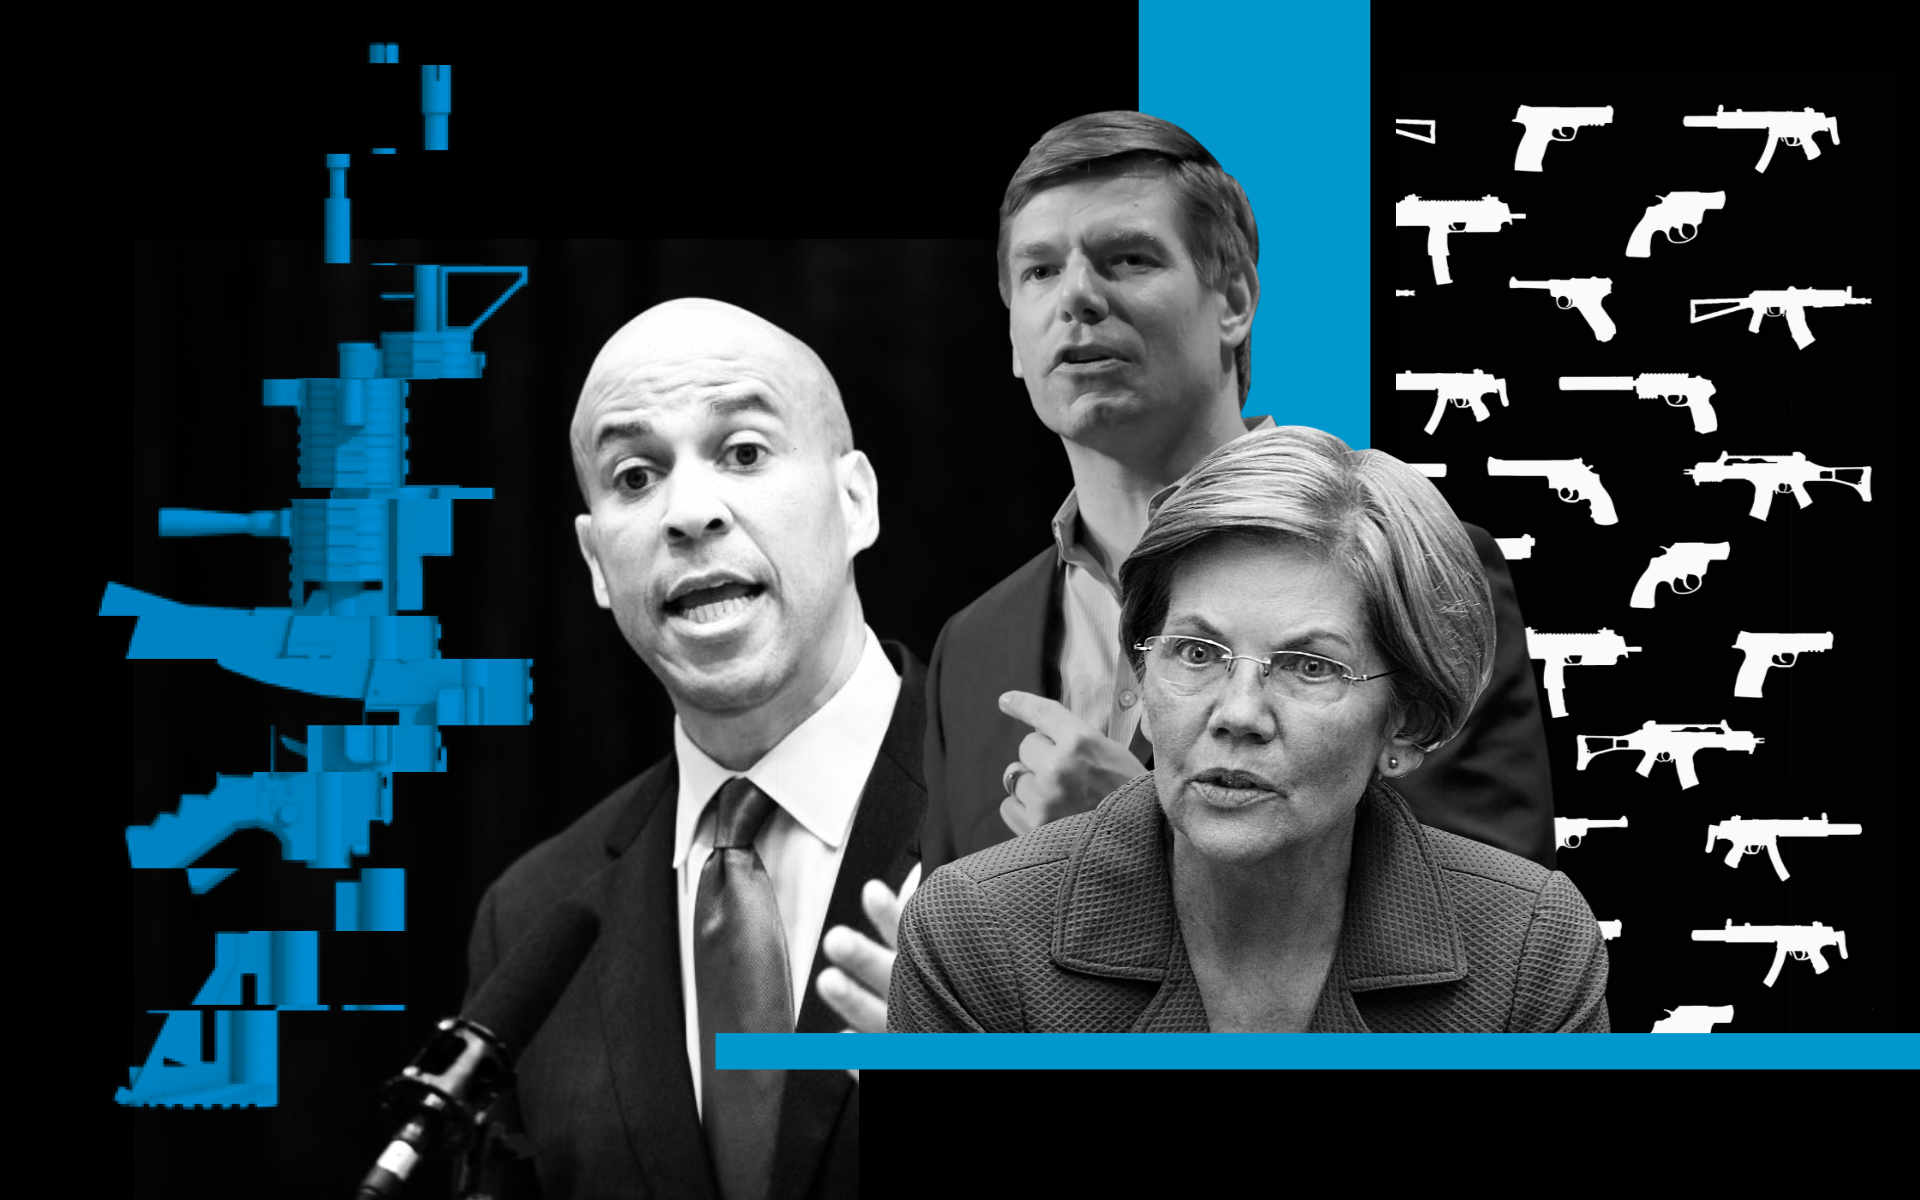 Democrats have been discussing the same ideas on guns for 25 years. It's time to change that.